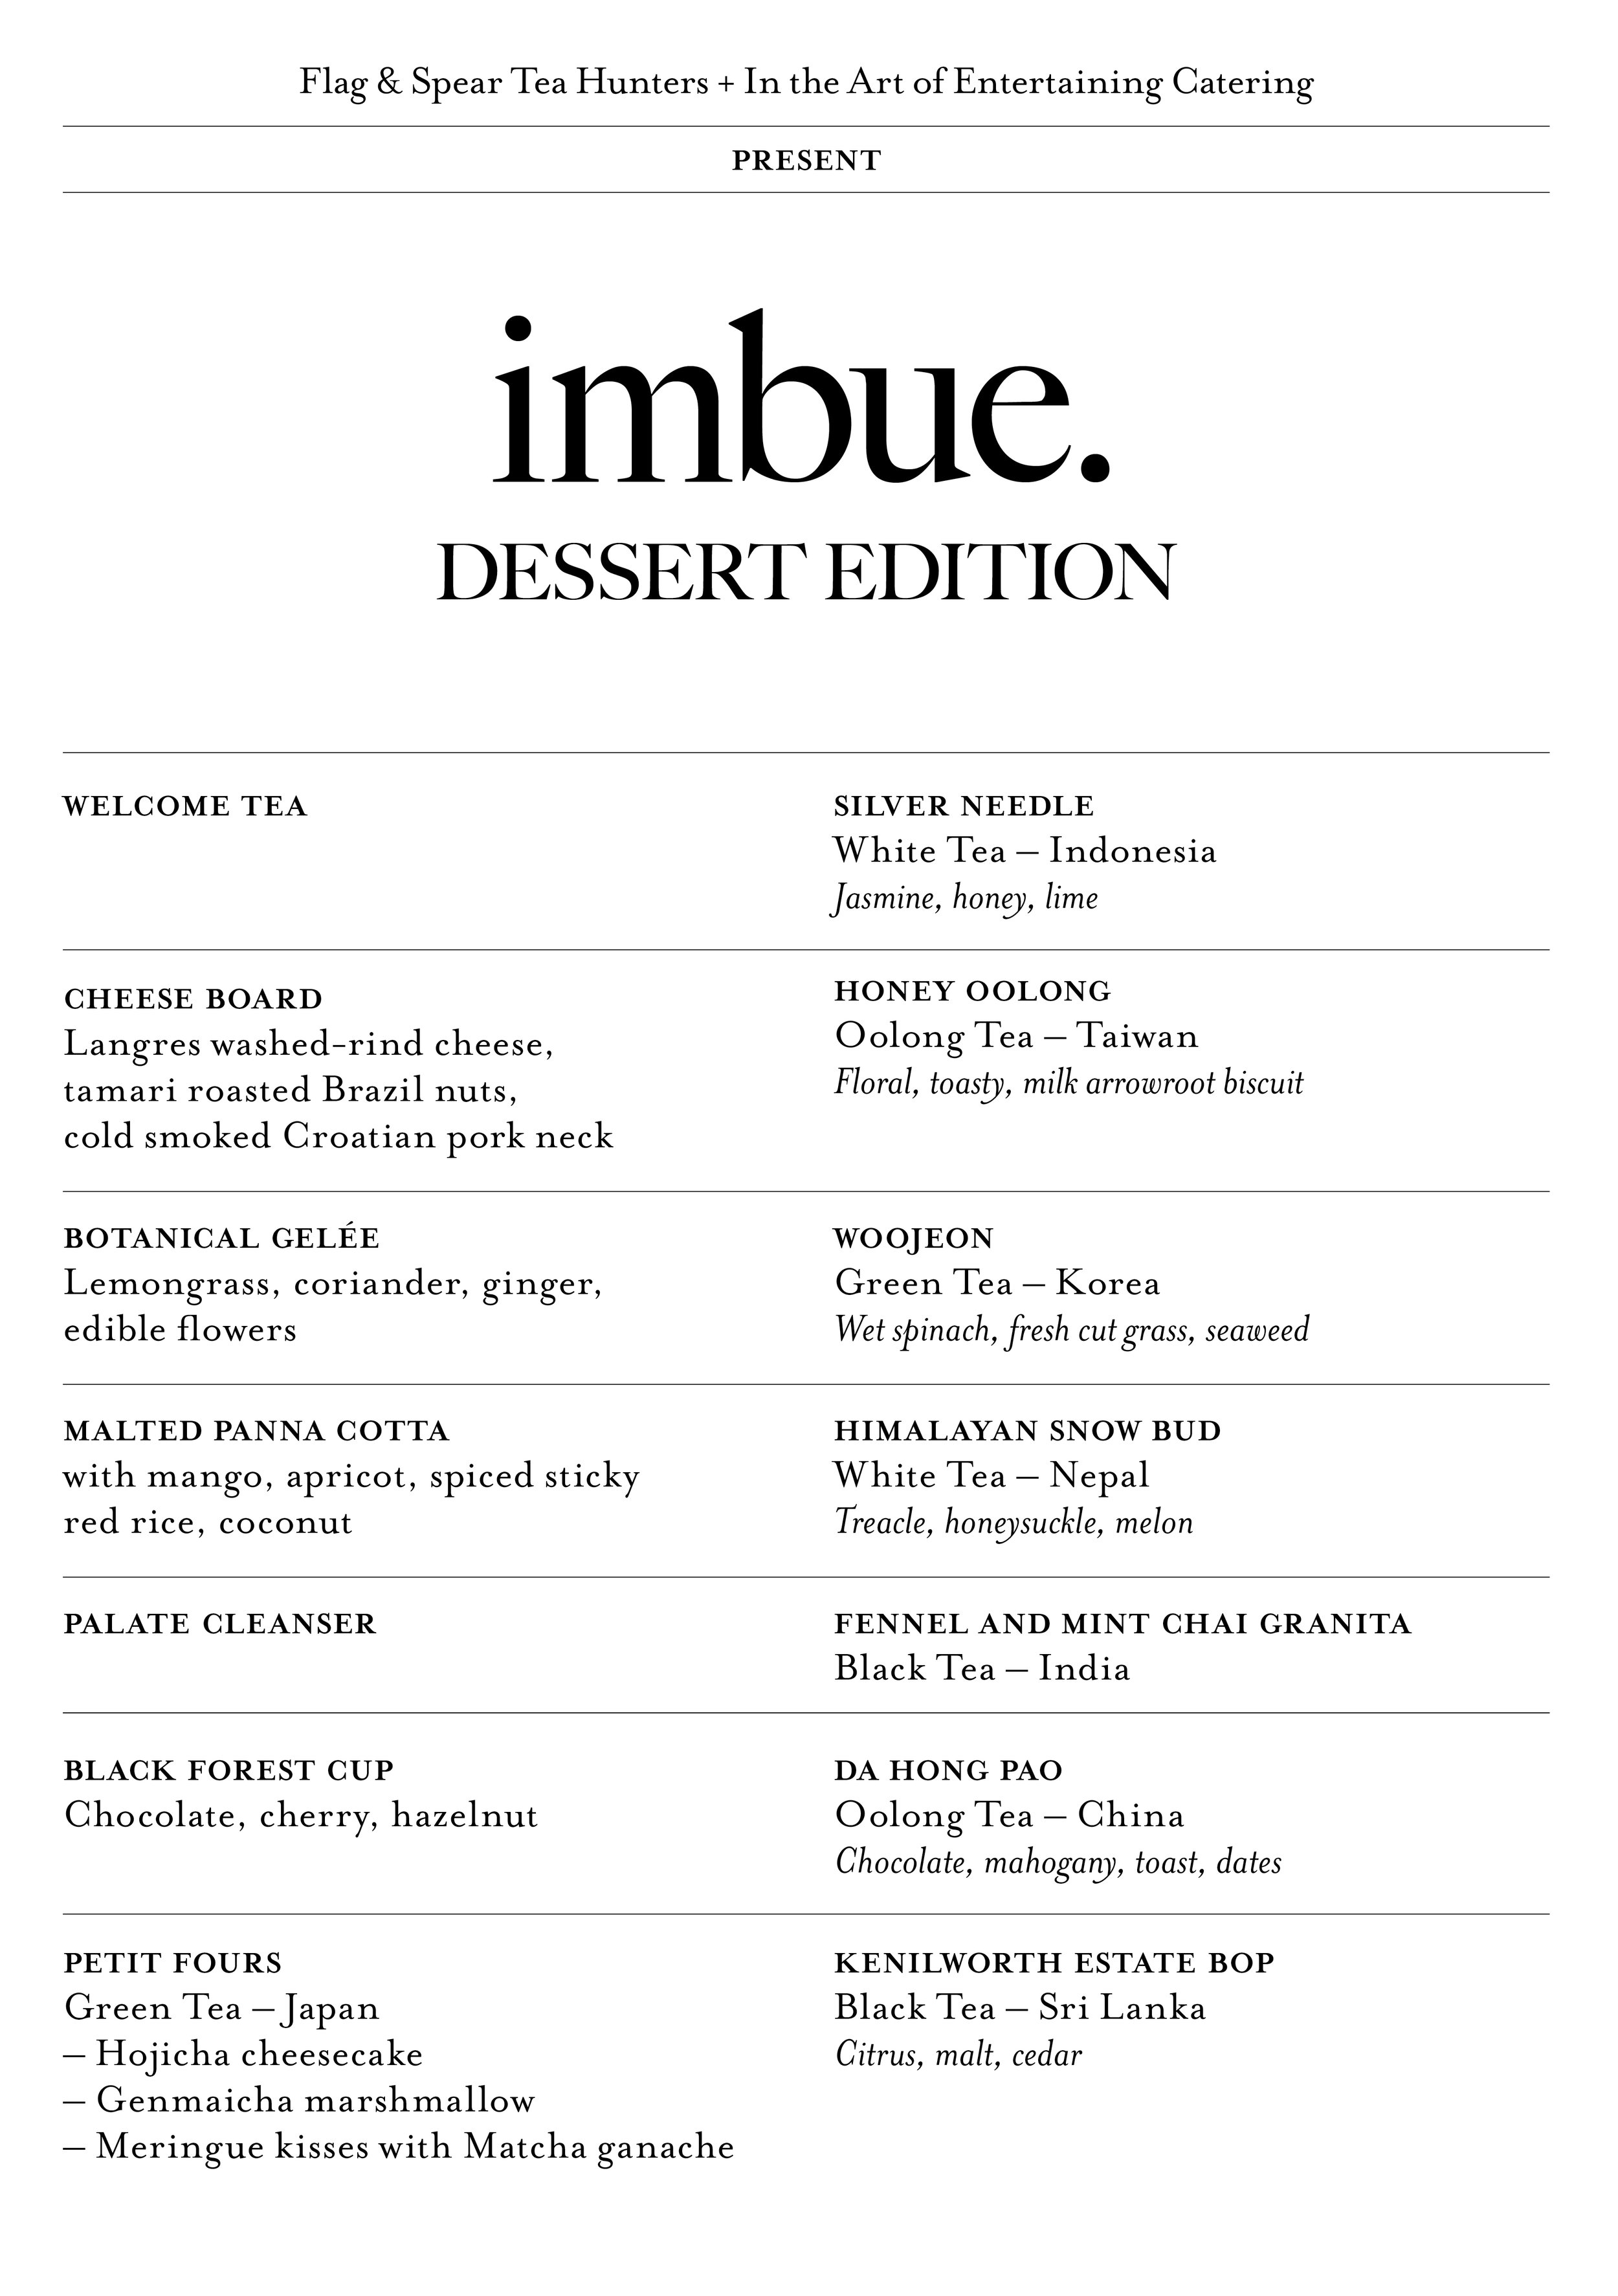 Dessert Edition menu single.jpg